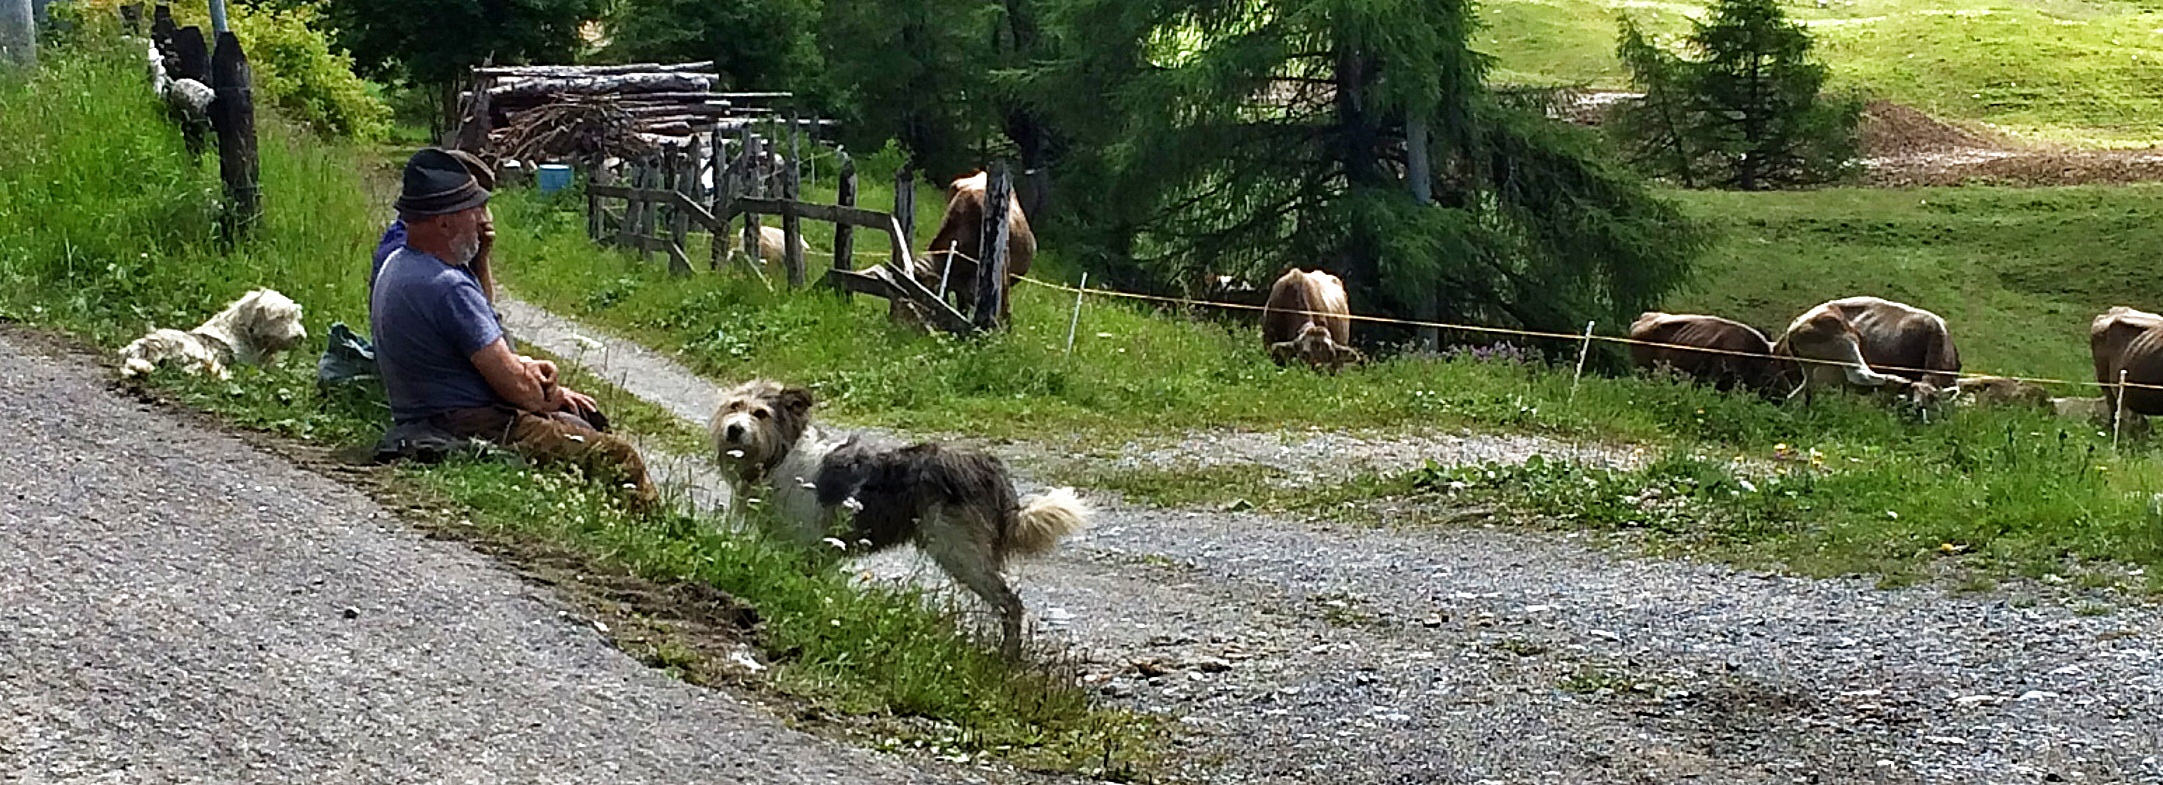 Nothing to do with France at all but a sneaky photo of some Italian cow-herders from the Alps the other day.